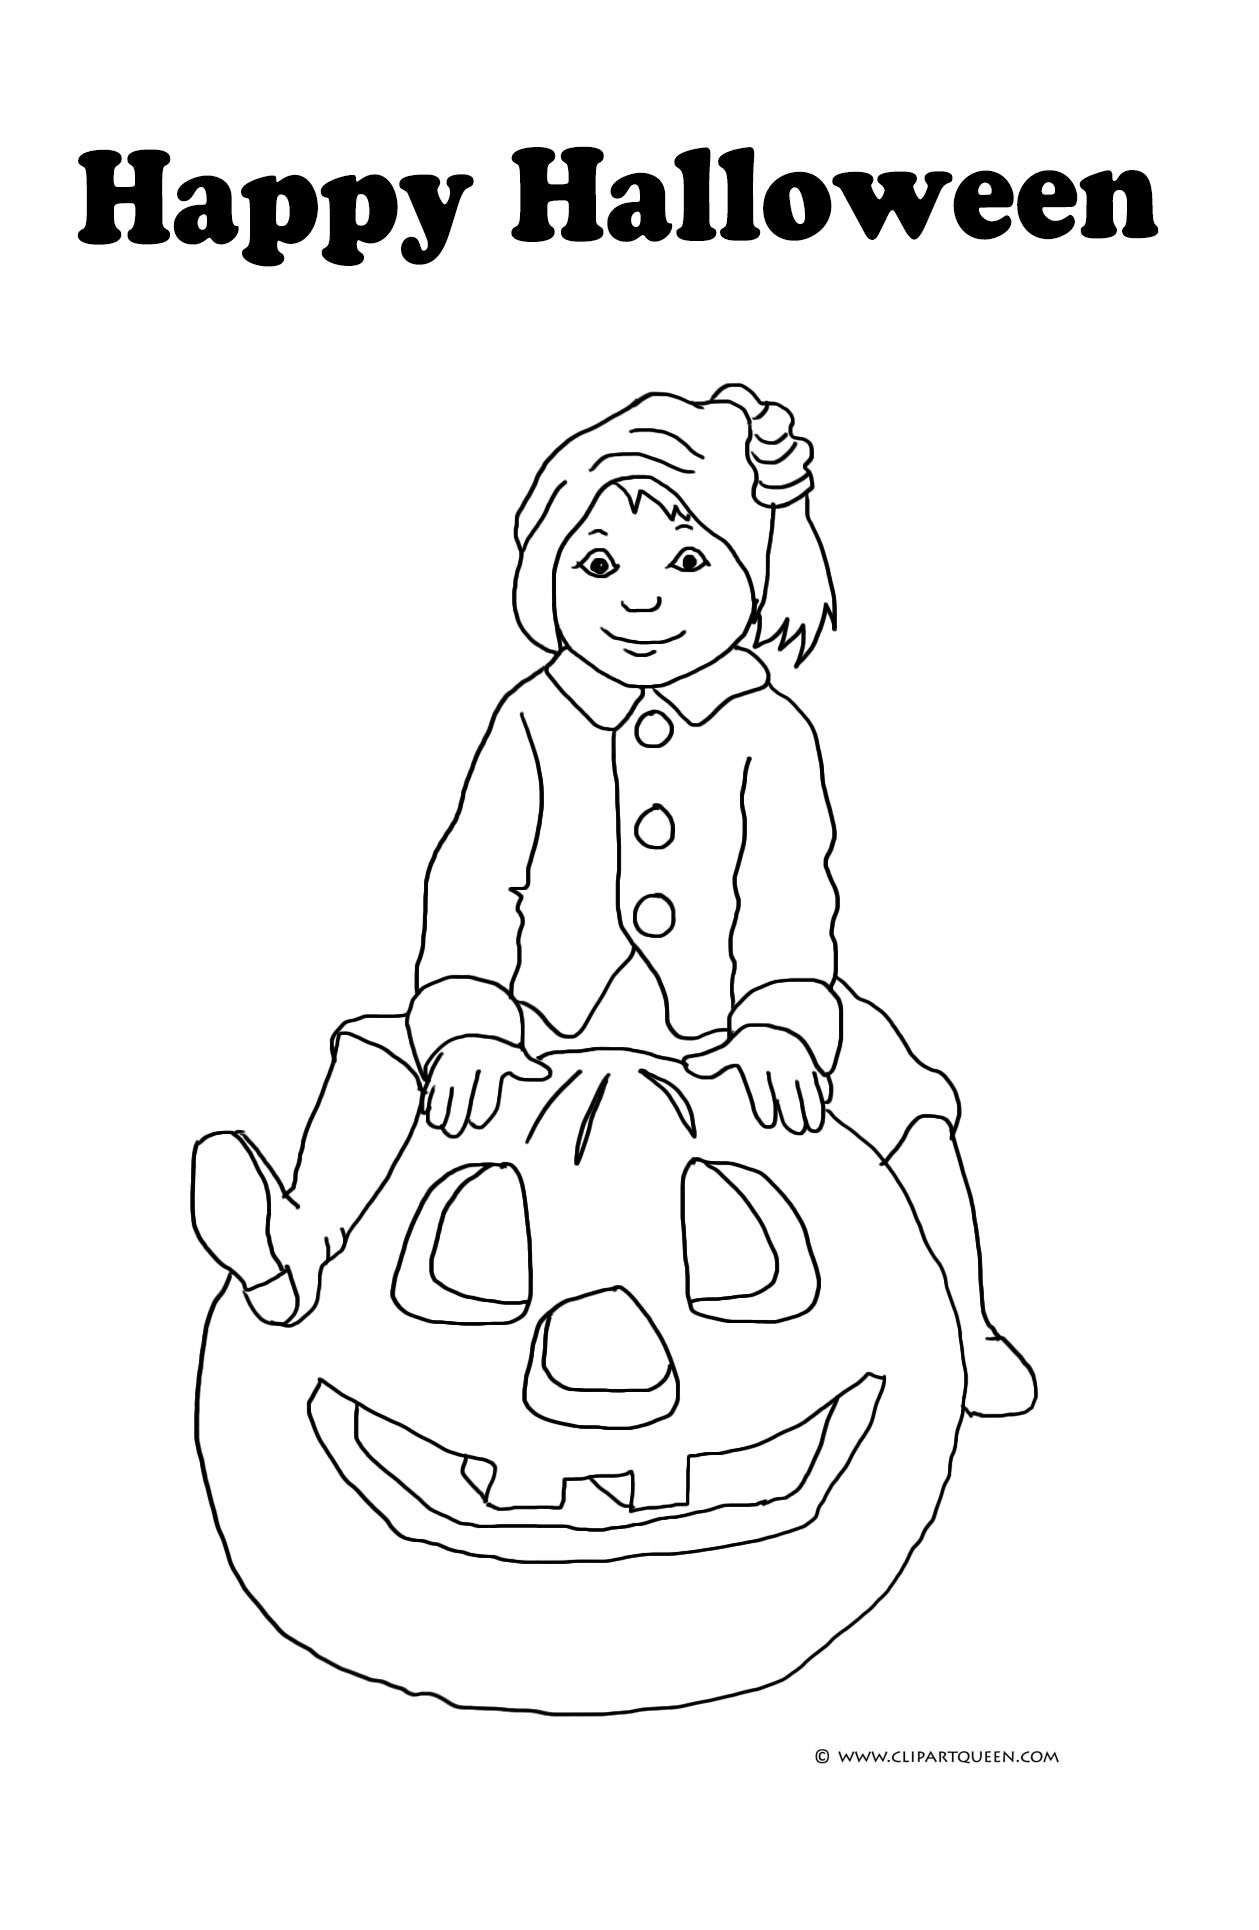 halloween card with boy and pumpkin